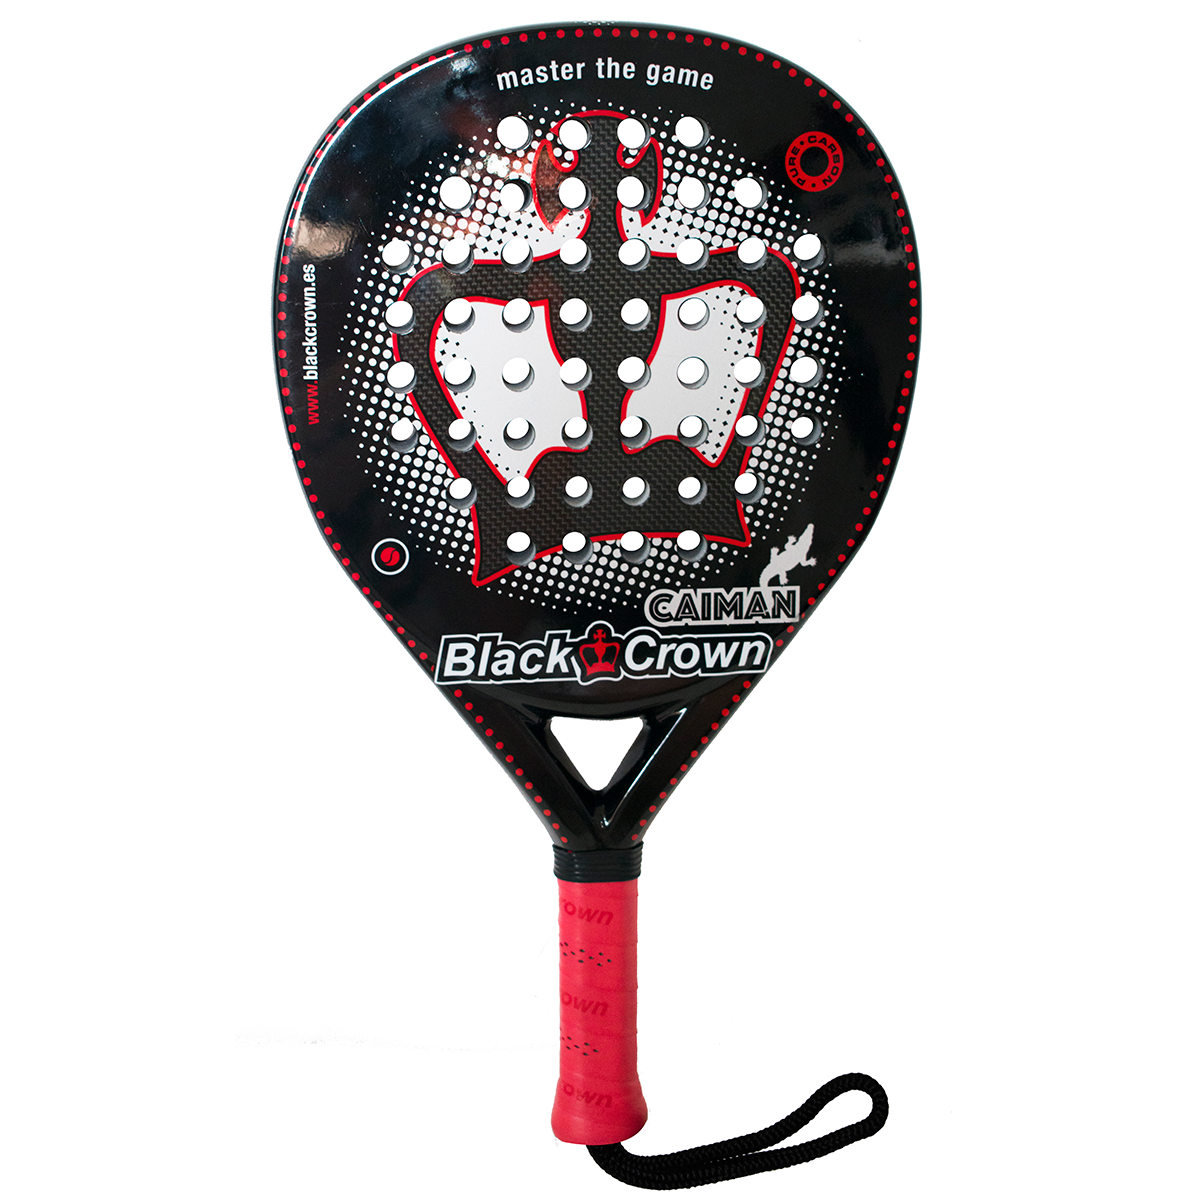 Padel Bat - Black Crown Caiman